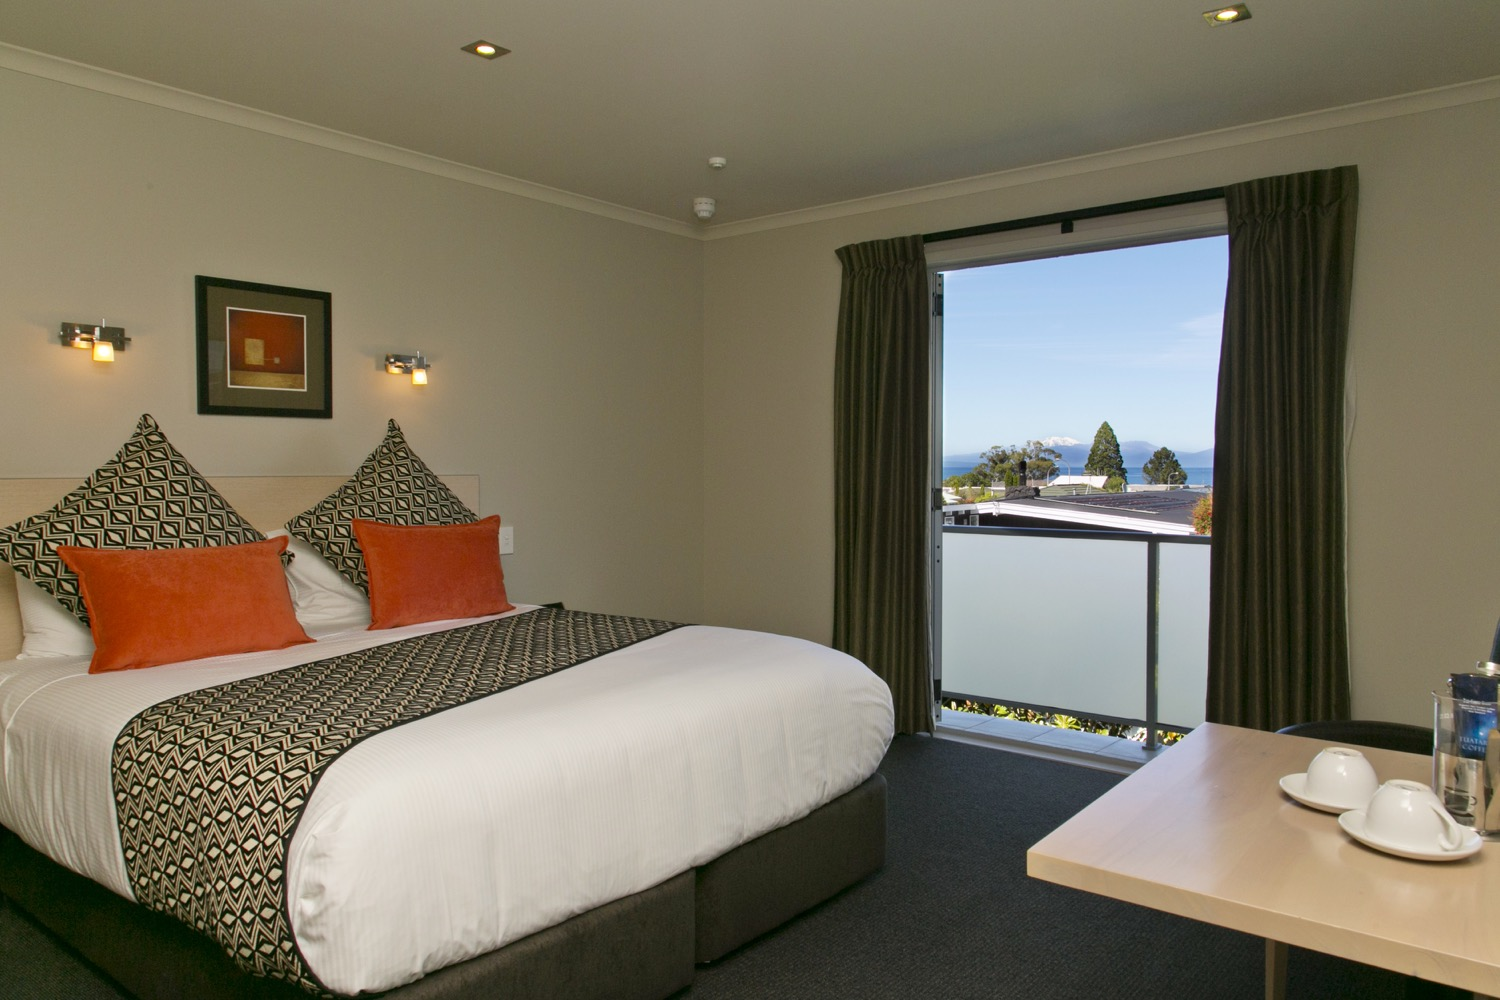 self contained accommodation rooms and suites beechtree motel rh beechtreemotel co nz